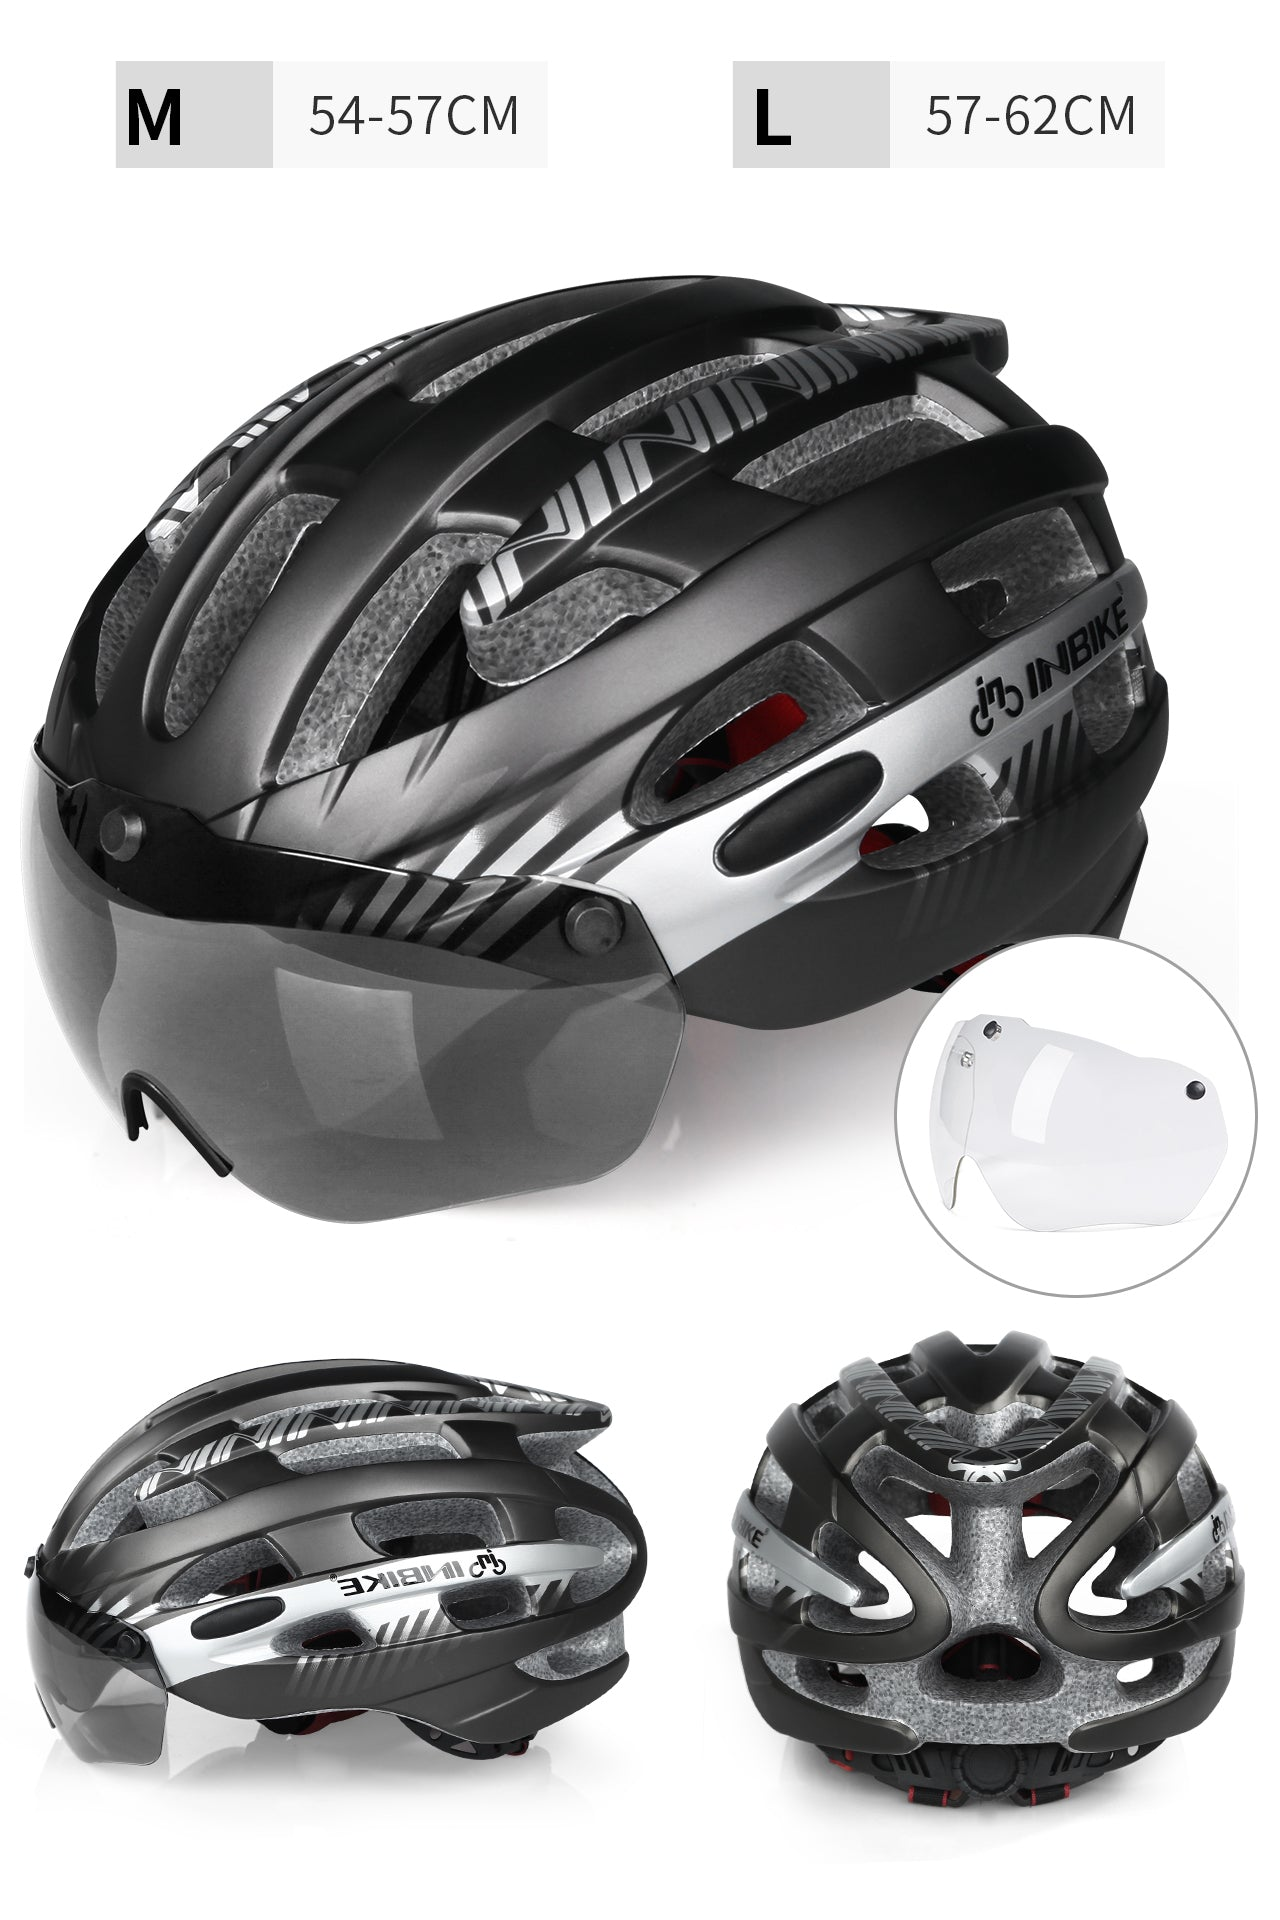 INBIKE Bike Helmet & UV Proof Lens